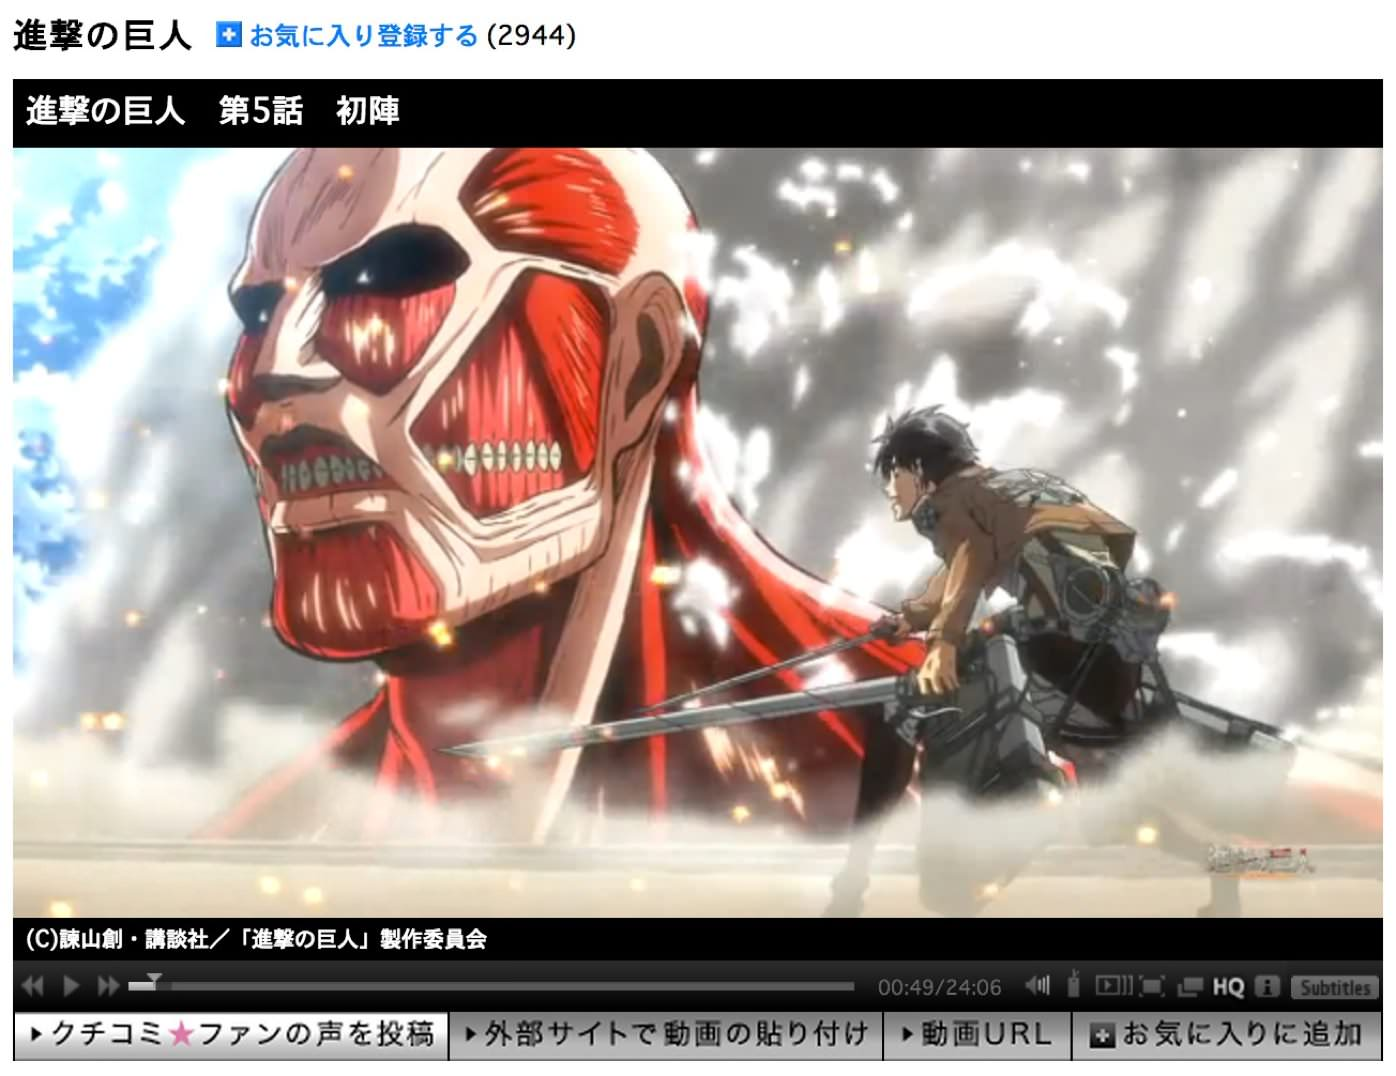 Bandai channel attack on titan